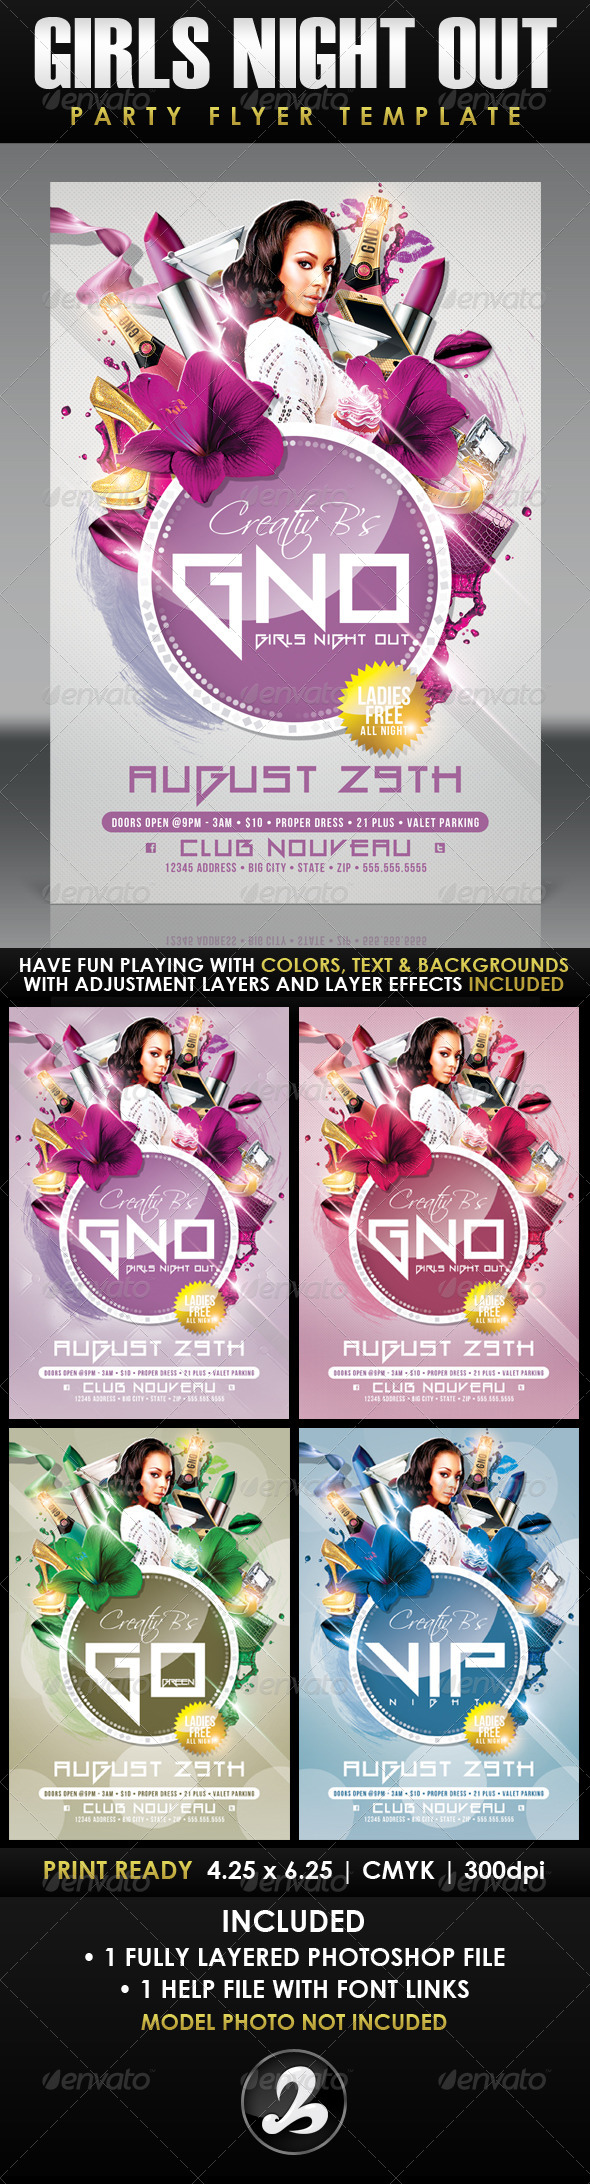 GNO - Girls Night Out Party Flyer Template - Clubs & Parties Events